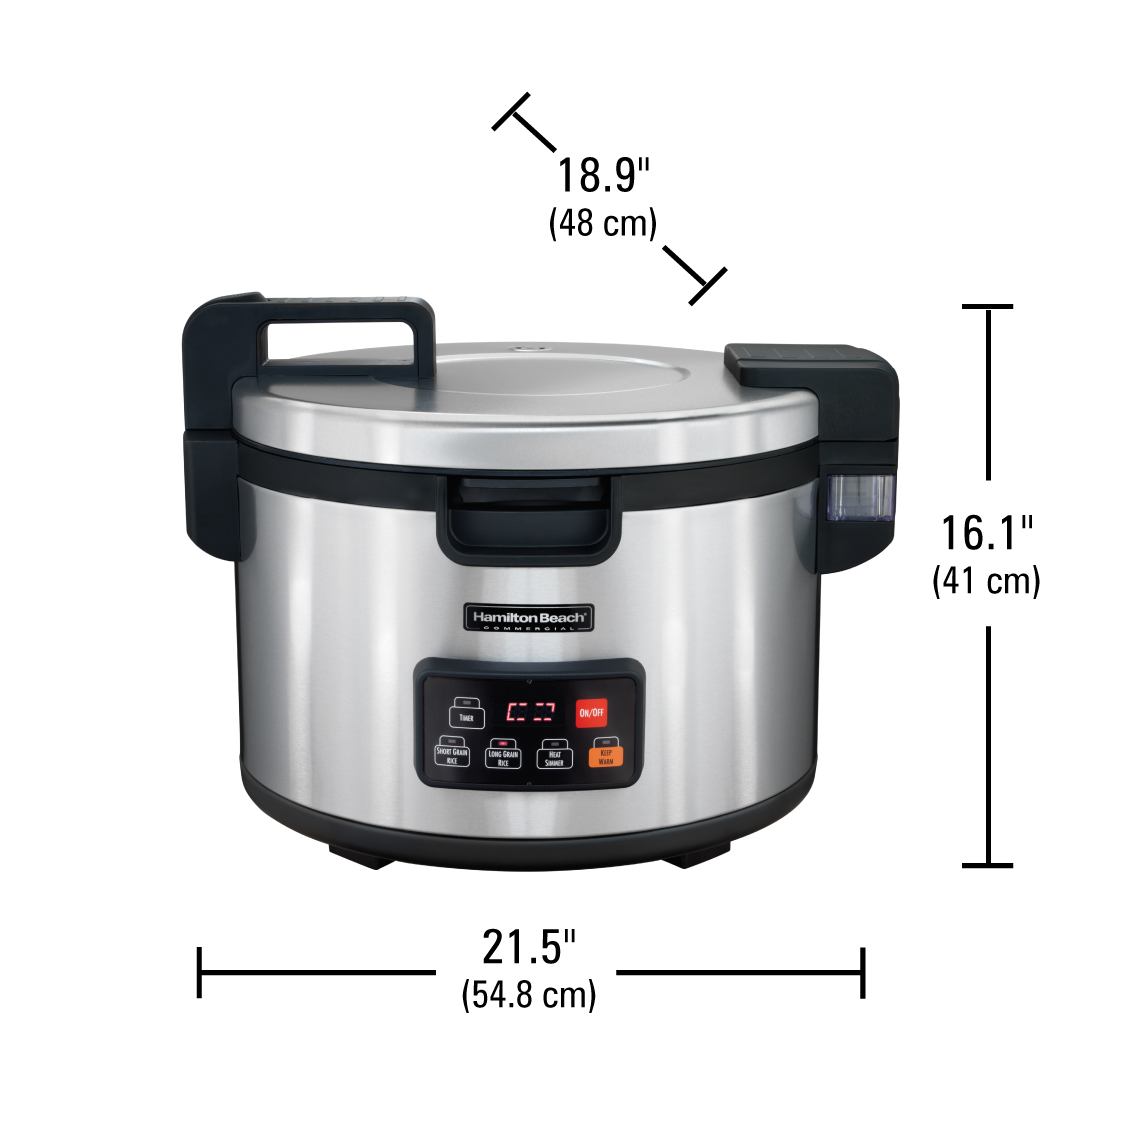 Commercial 90 Cup Cooked Rice Cooker/Warmer 37590 | Hamilton Beach  Commercial